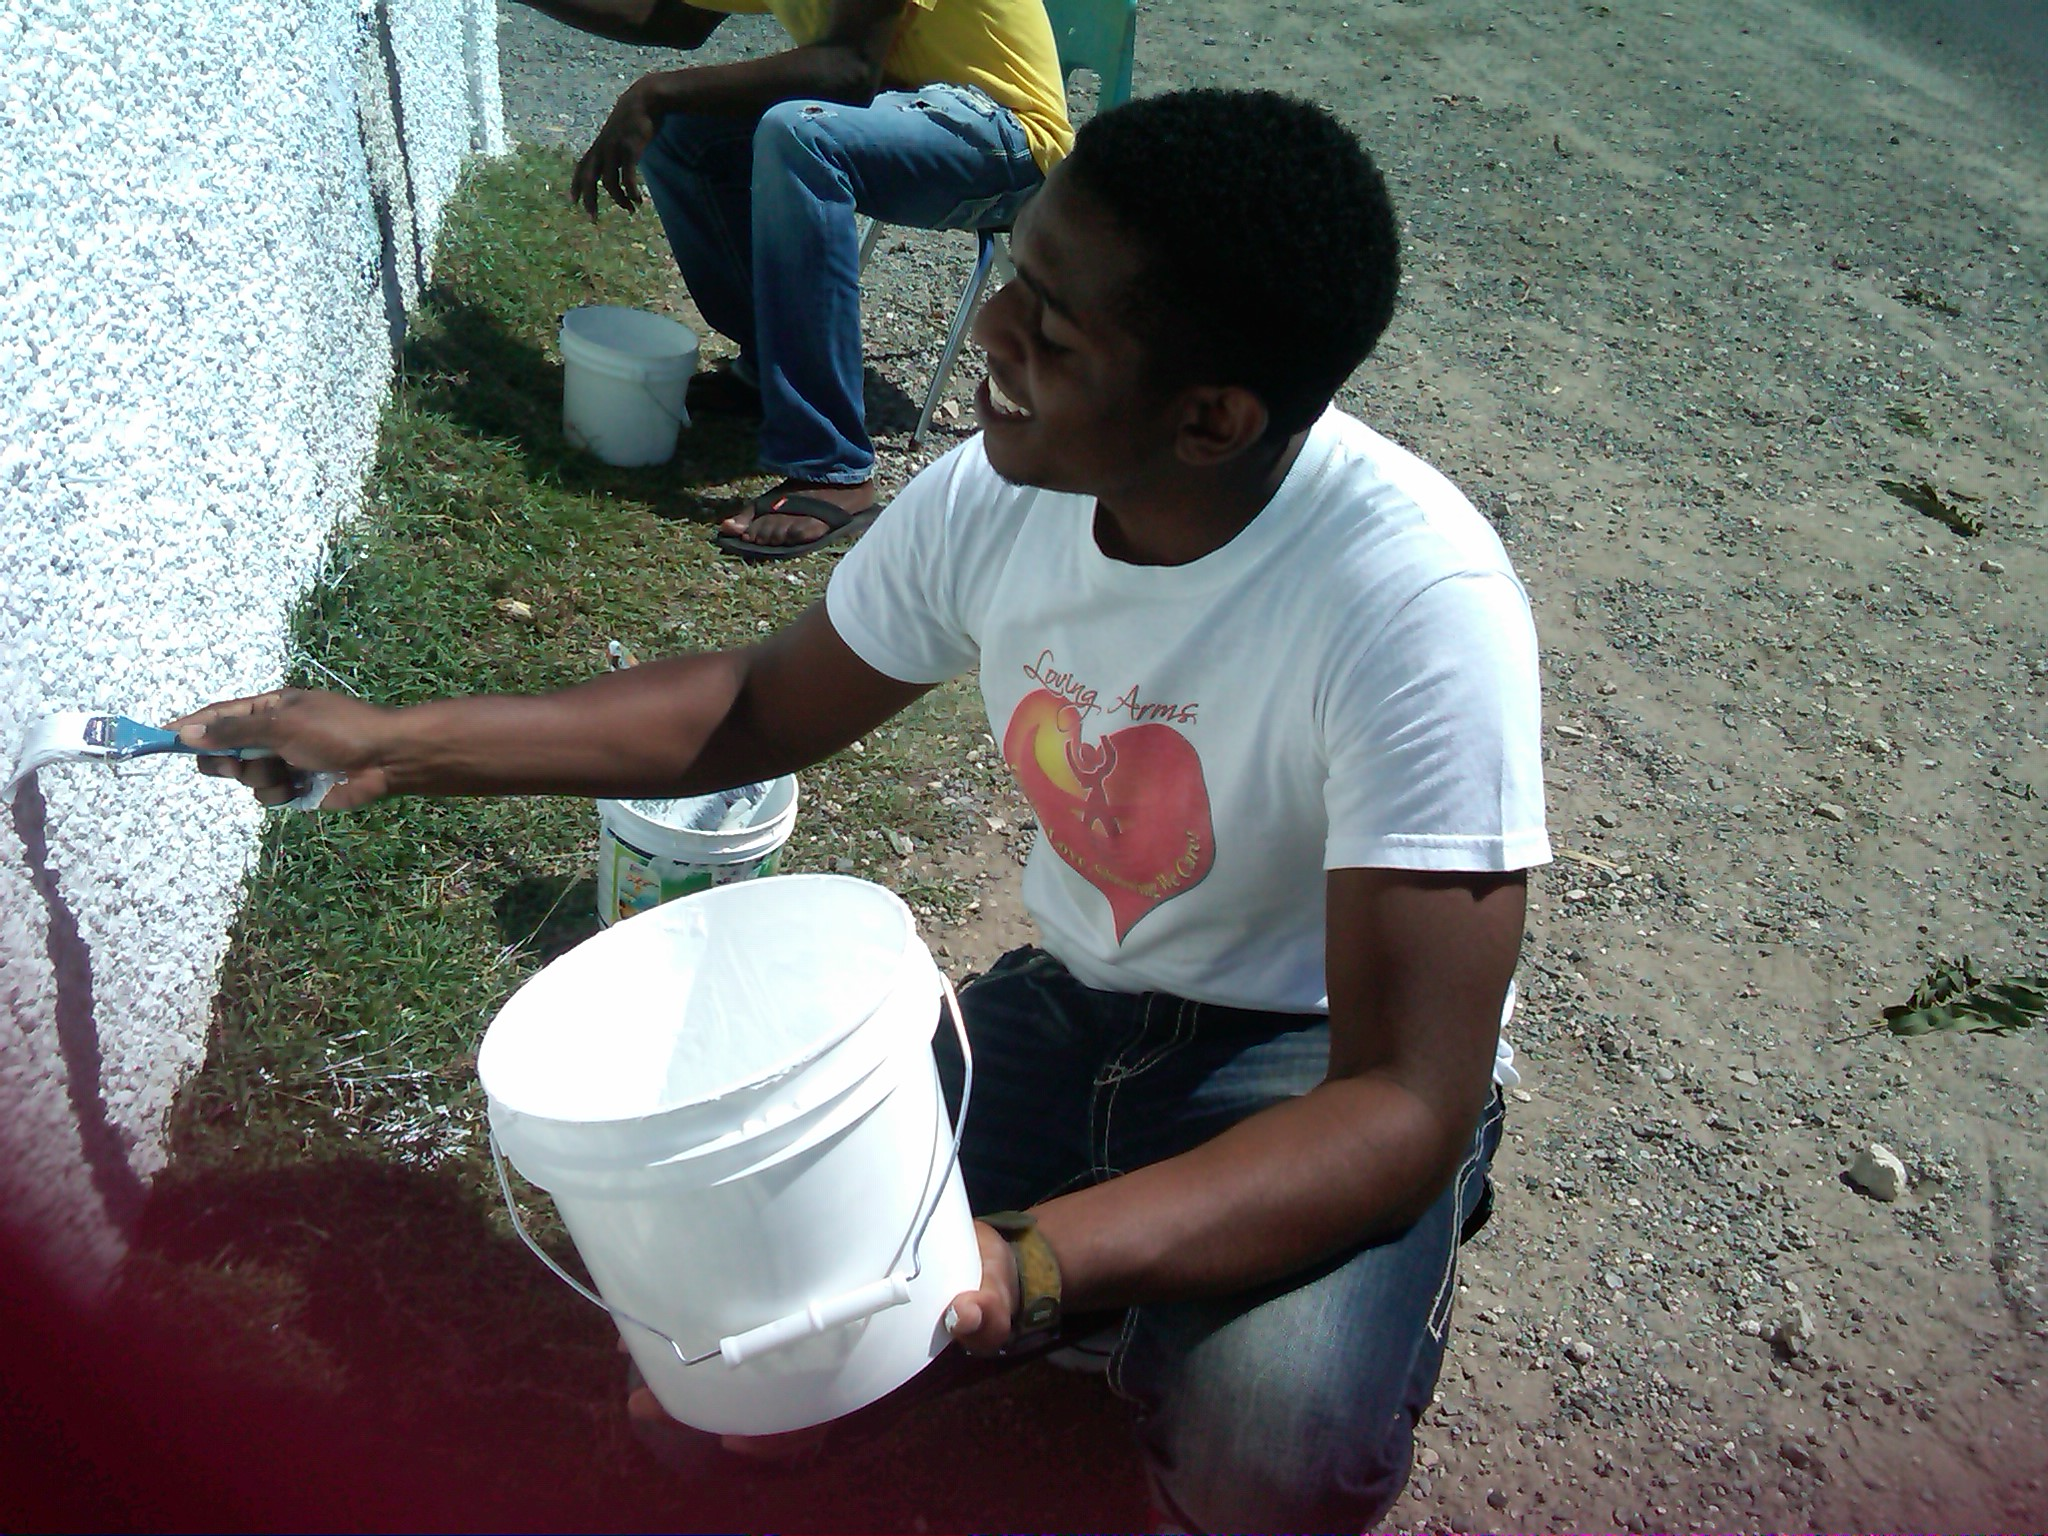 Loving Arms Youth Club members painting at Newlands Basic School.